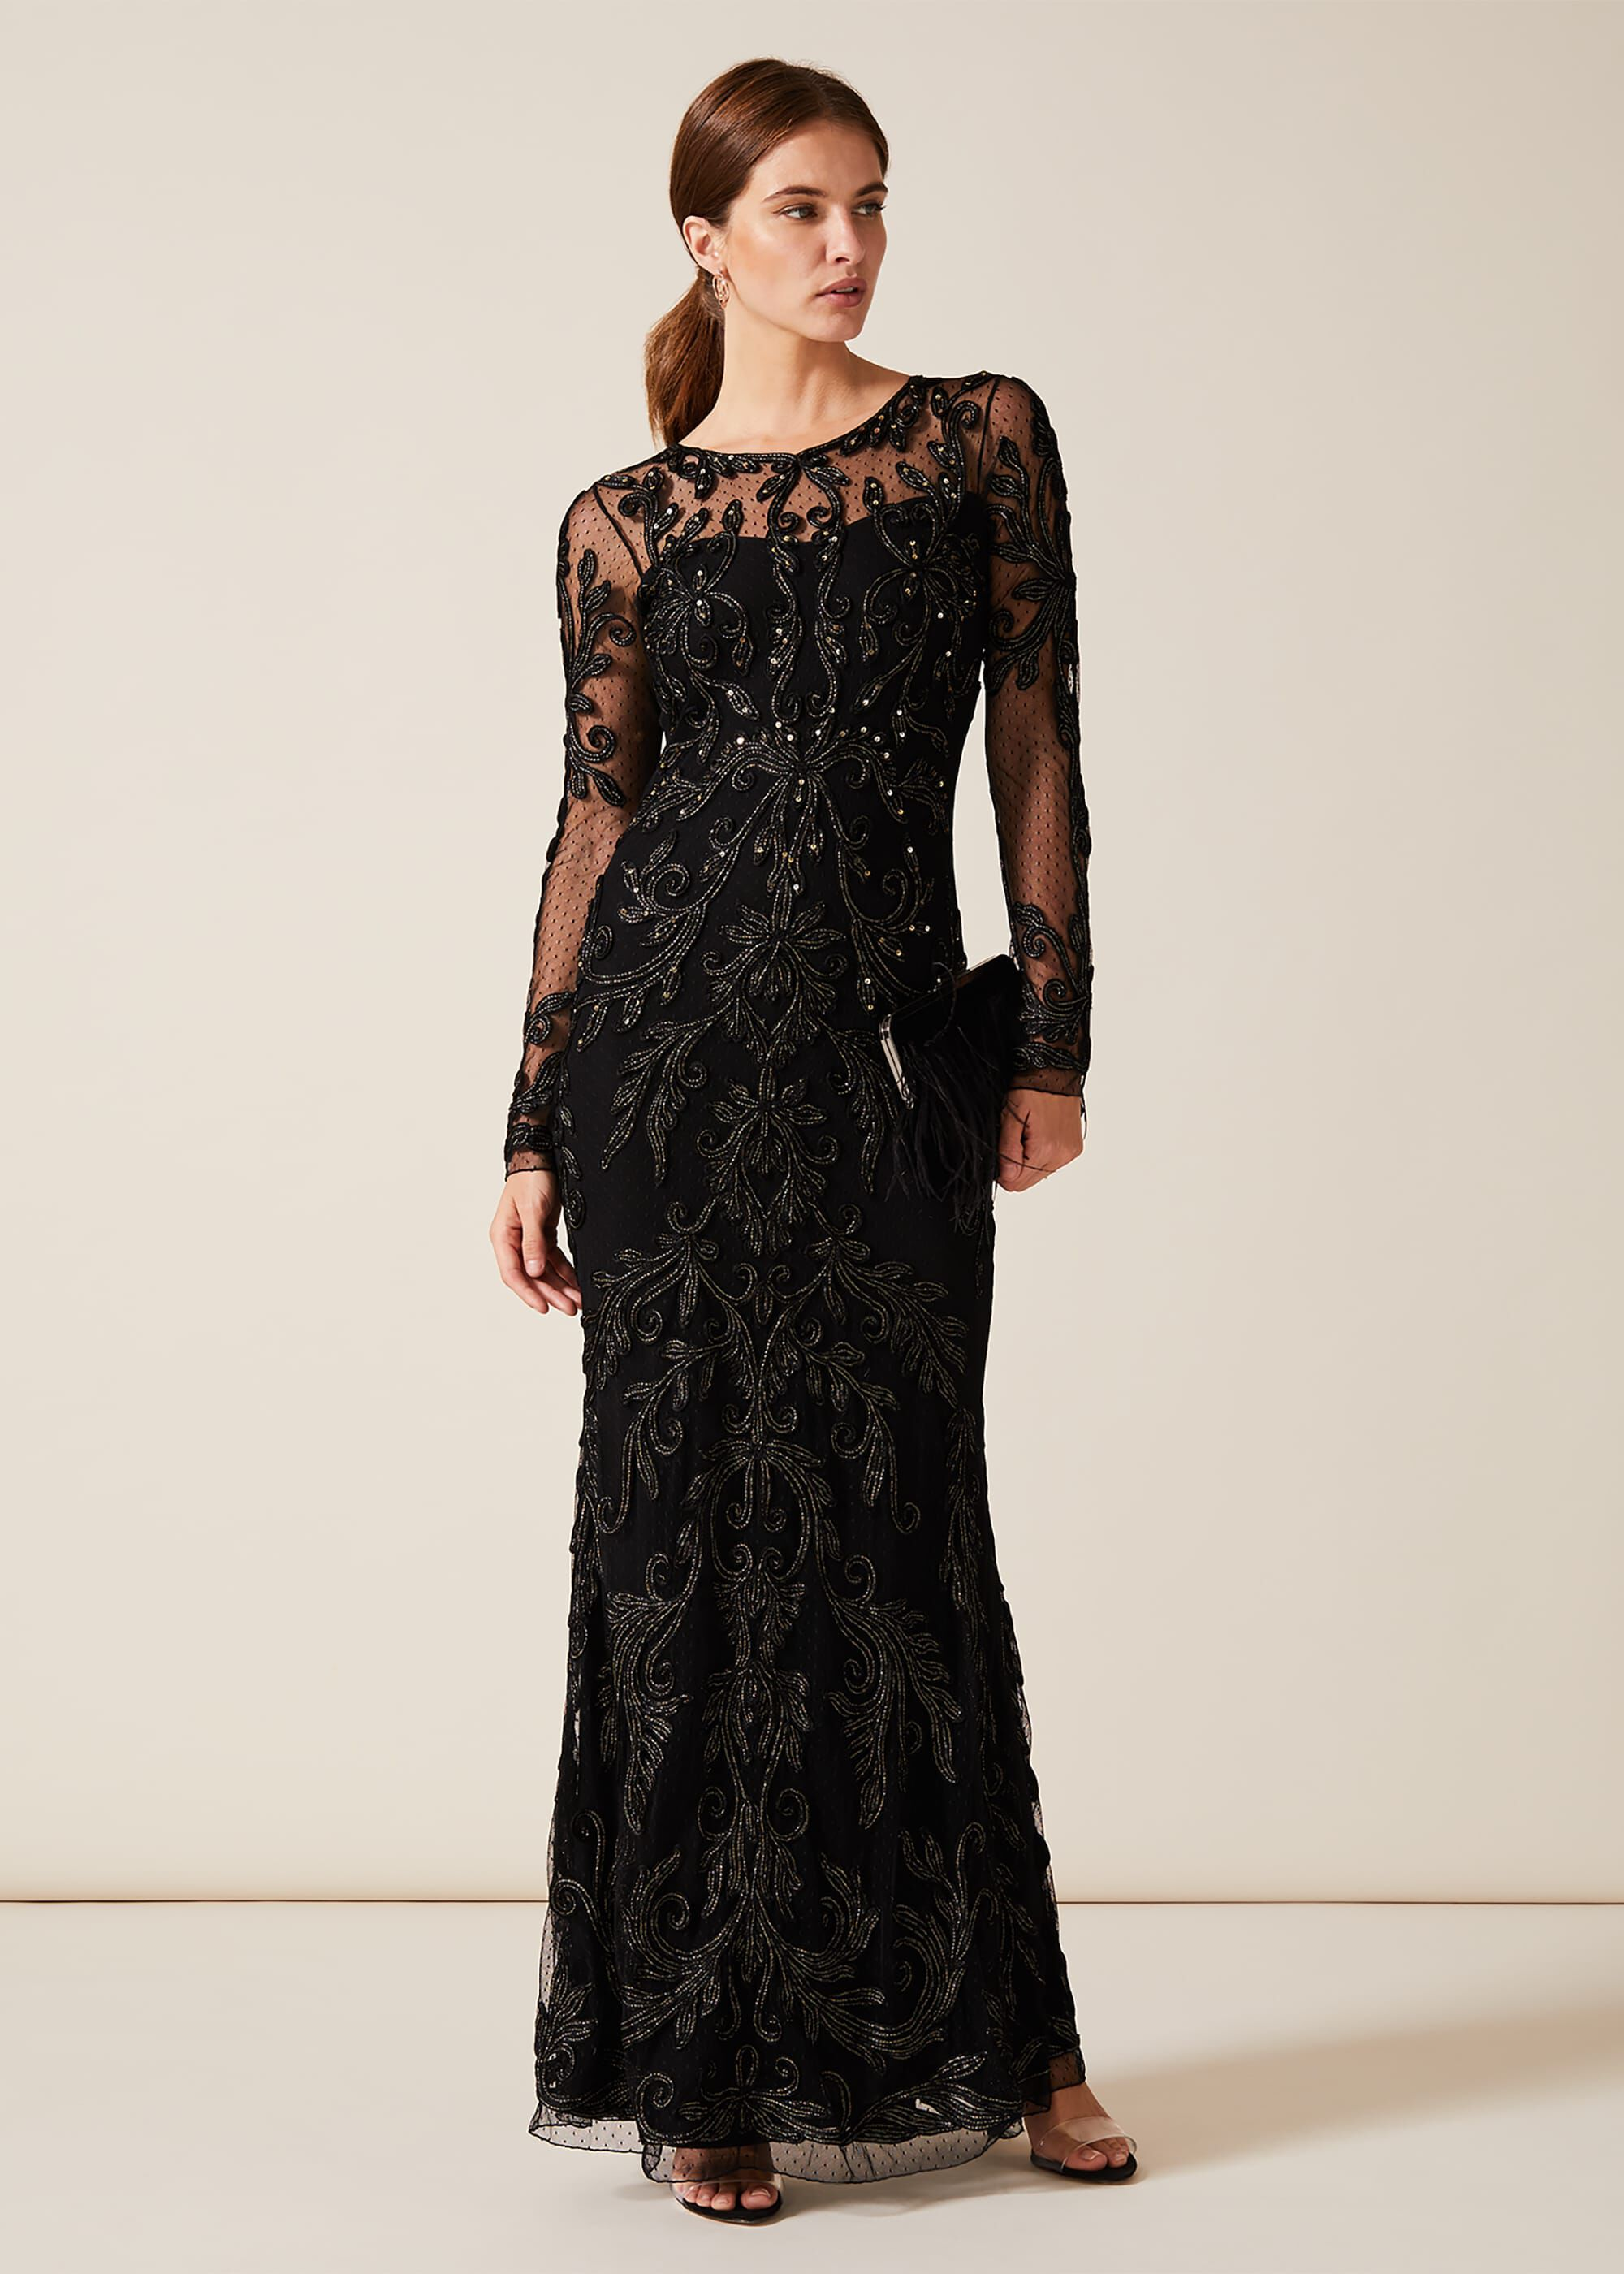 Phase Eight Contessa Tapework Lace Dress, Black, Maxi, Occasion Dress